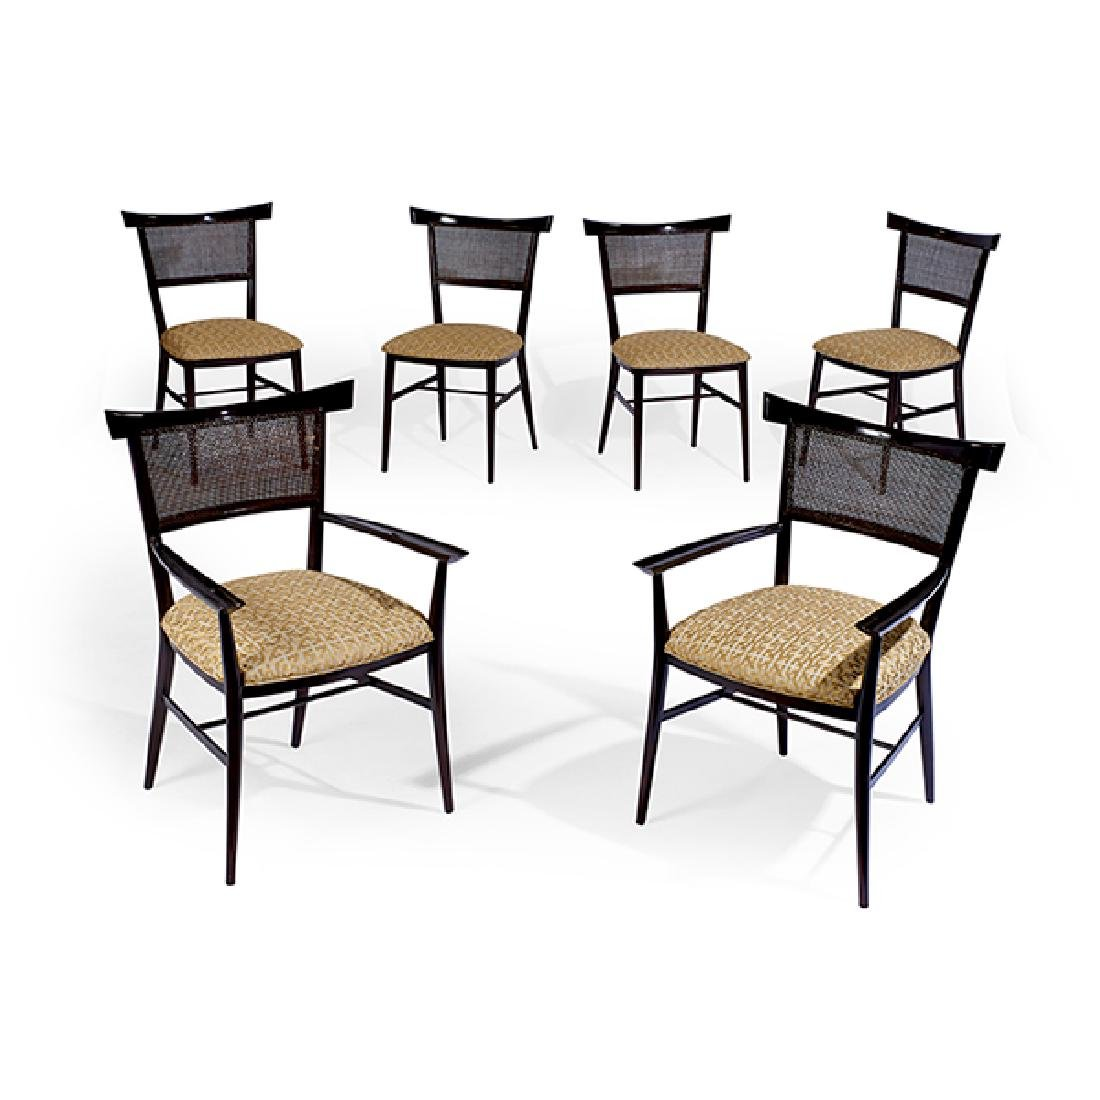 Paul McCobb for Winchendon Planner Group chairs